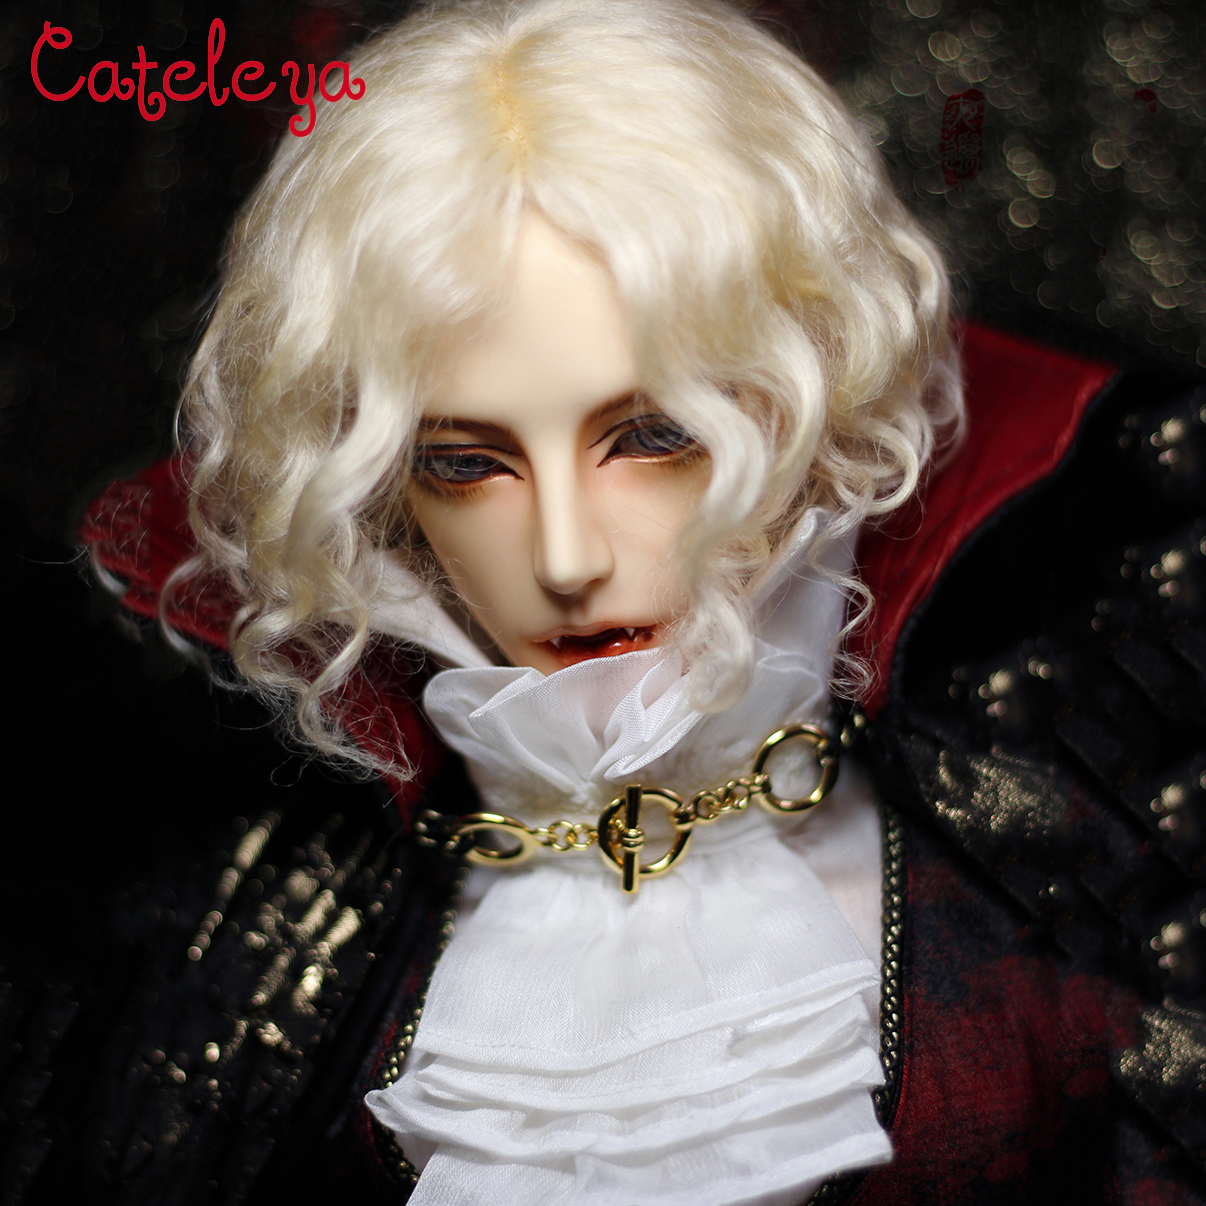 Cateleya bjd 1/3 big female uncle temperament aristocratic split mohair wool rolls European style short curly hair wig-in Dolls Accessories from Toys & Hobbies    1